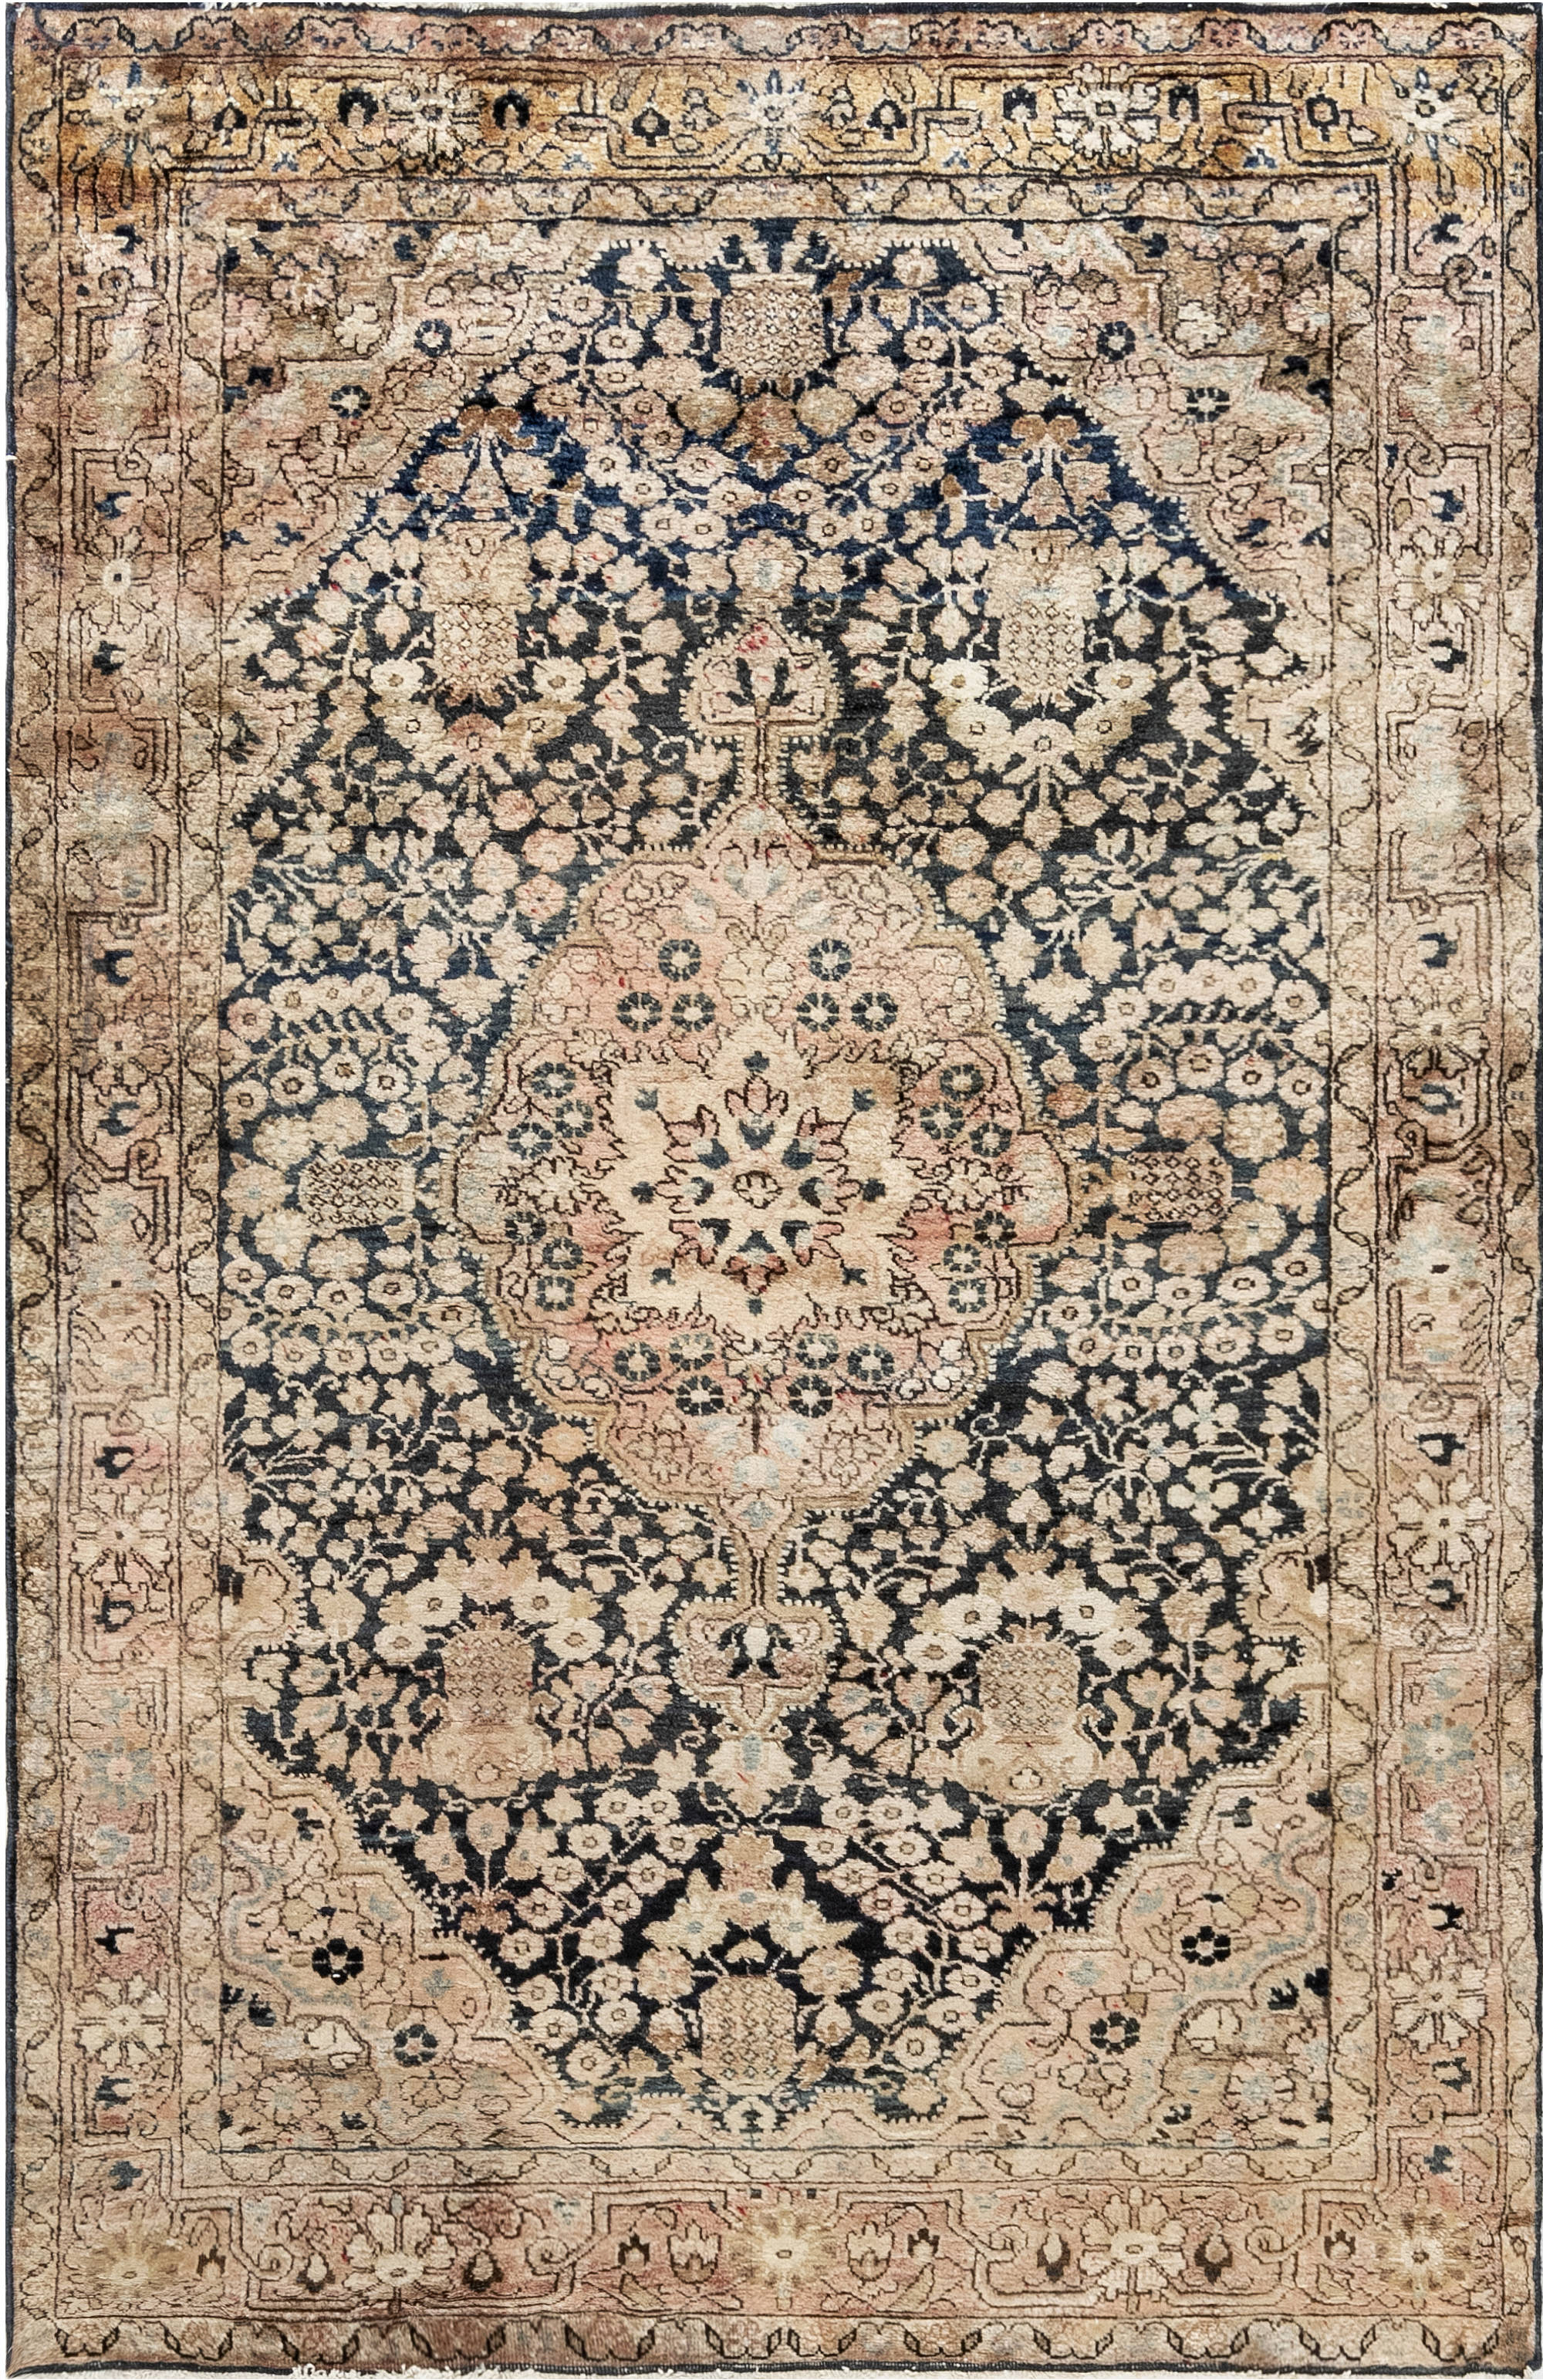 Antique Persian Kirman Rug BB6925